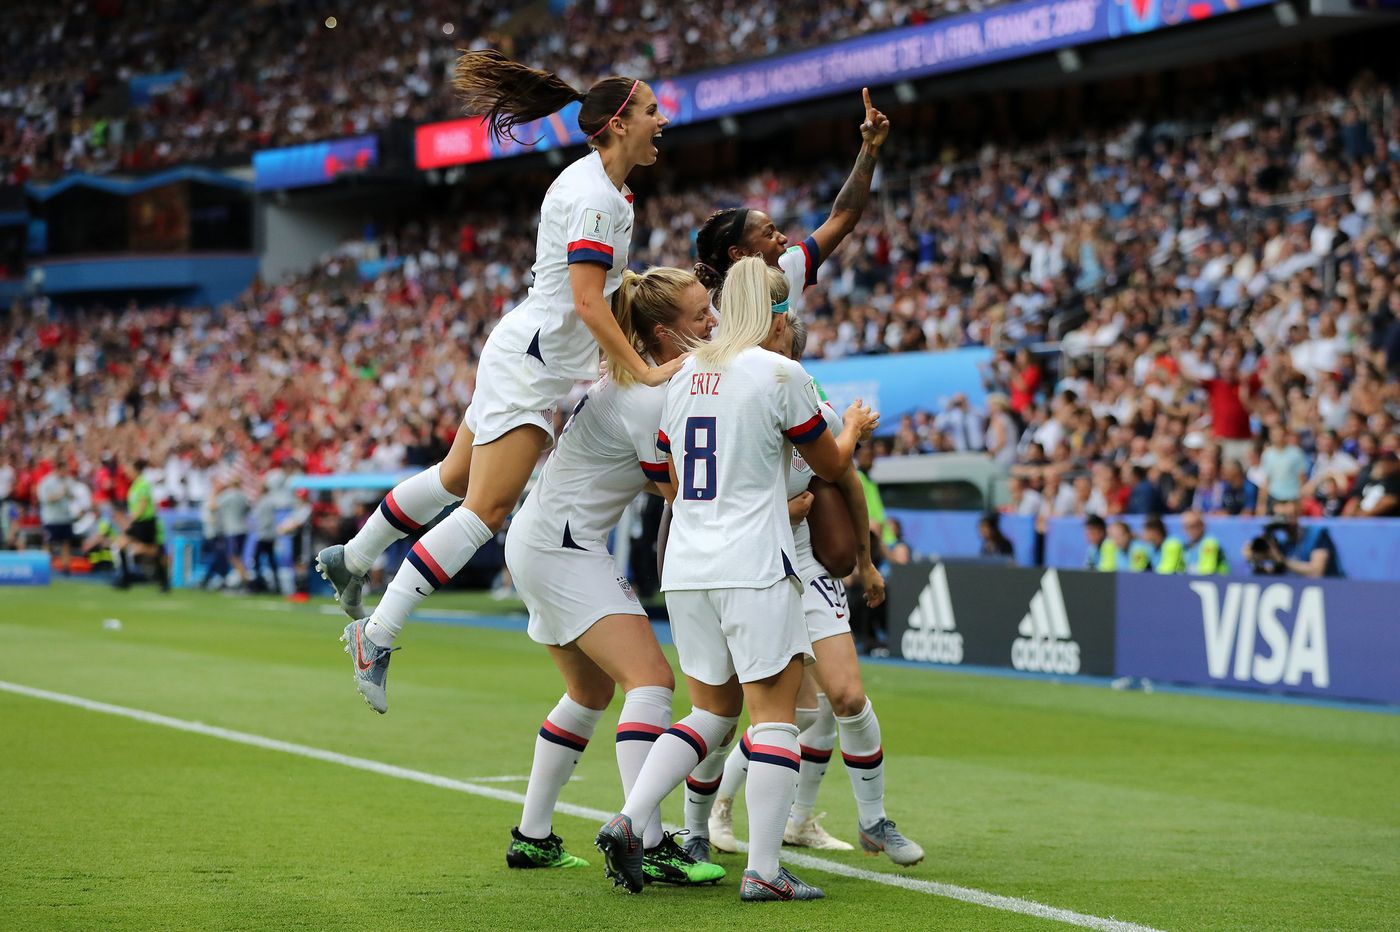 Where to watch the Women's World Cup final, even if you're down the Shore